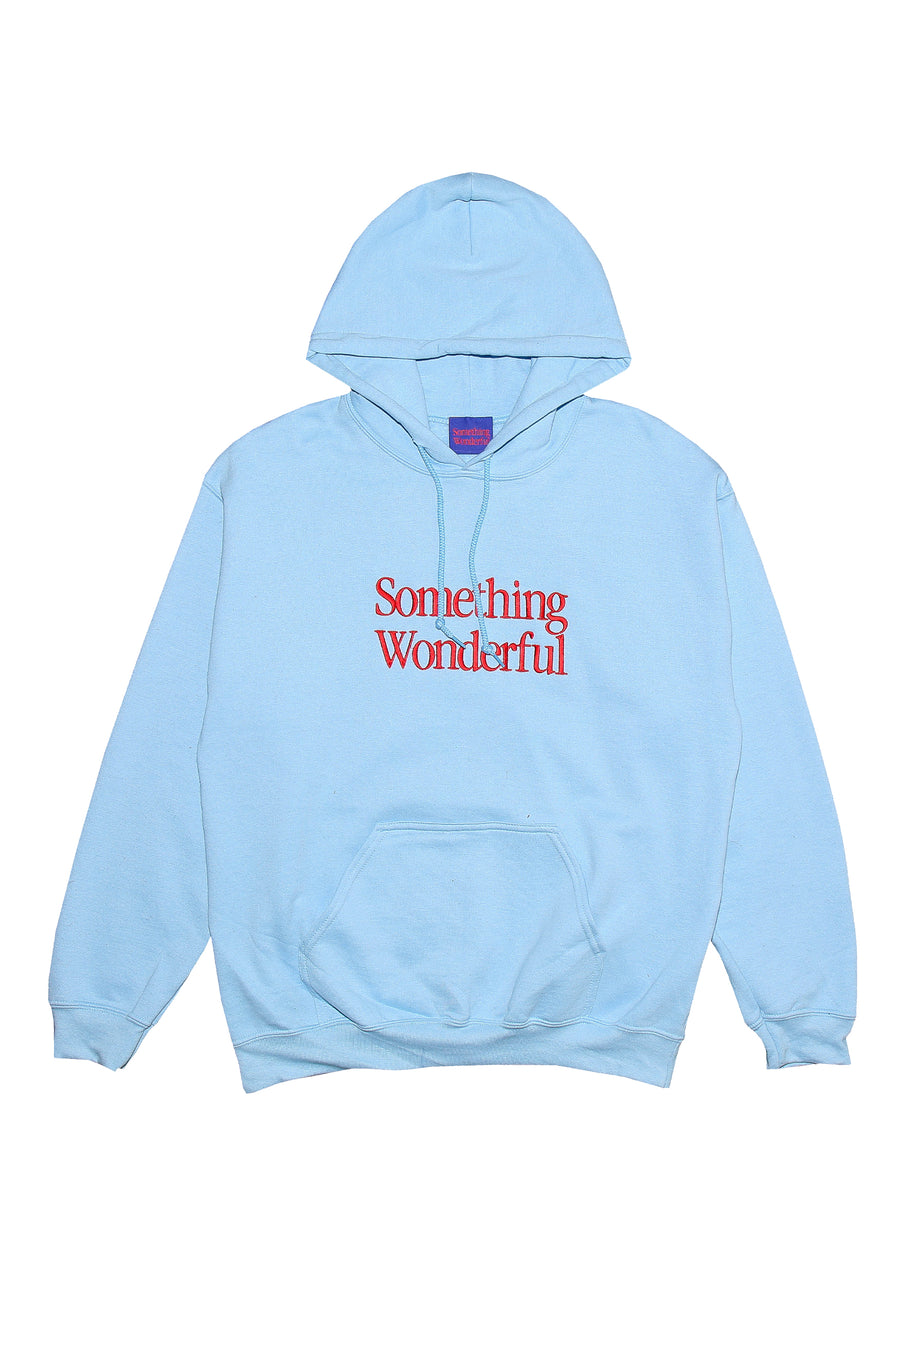 LOGO HOODED SWEATSHIRT LIGHT BLUE *PRE SALE